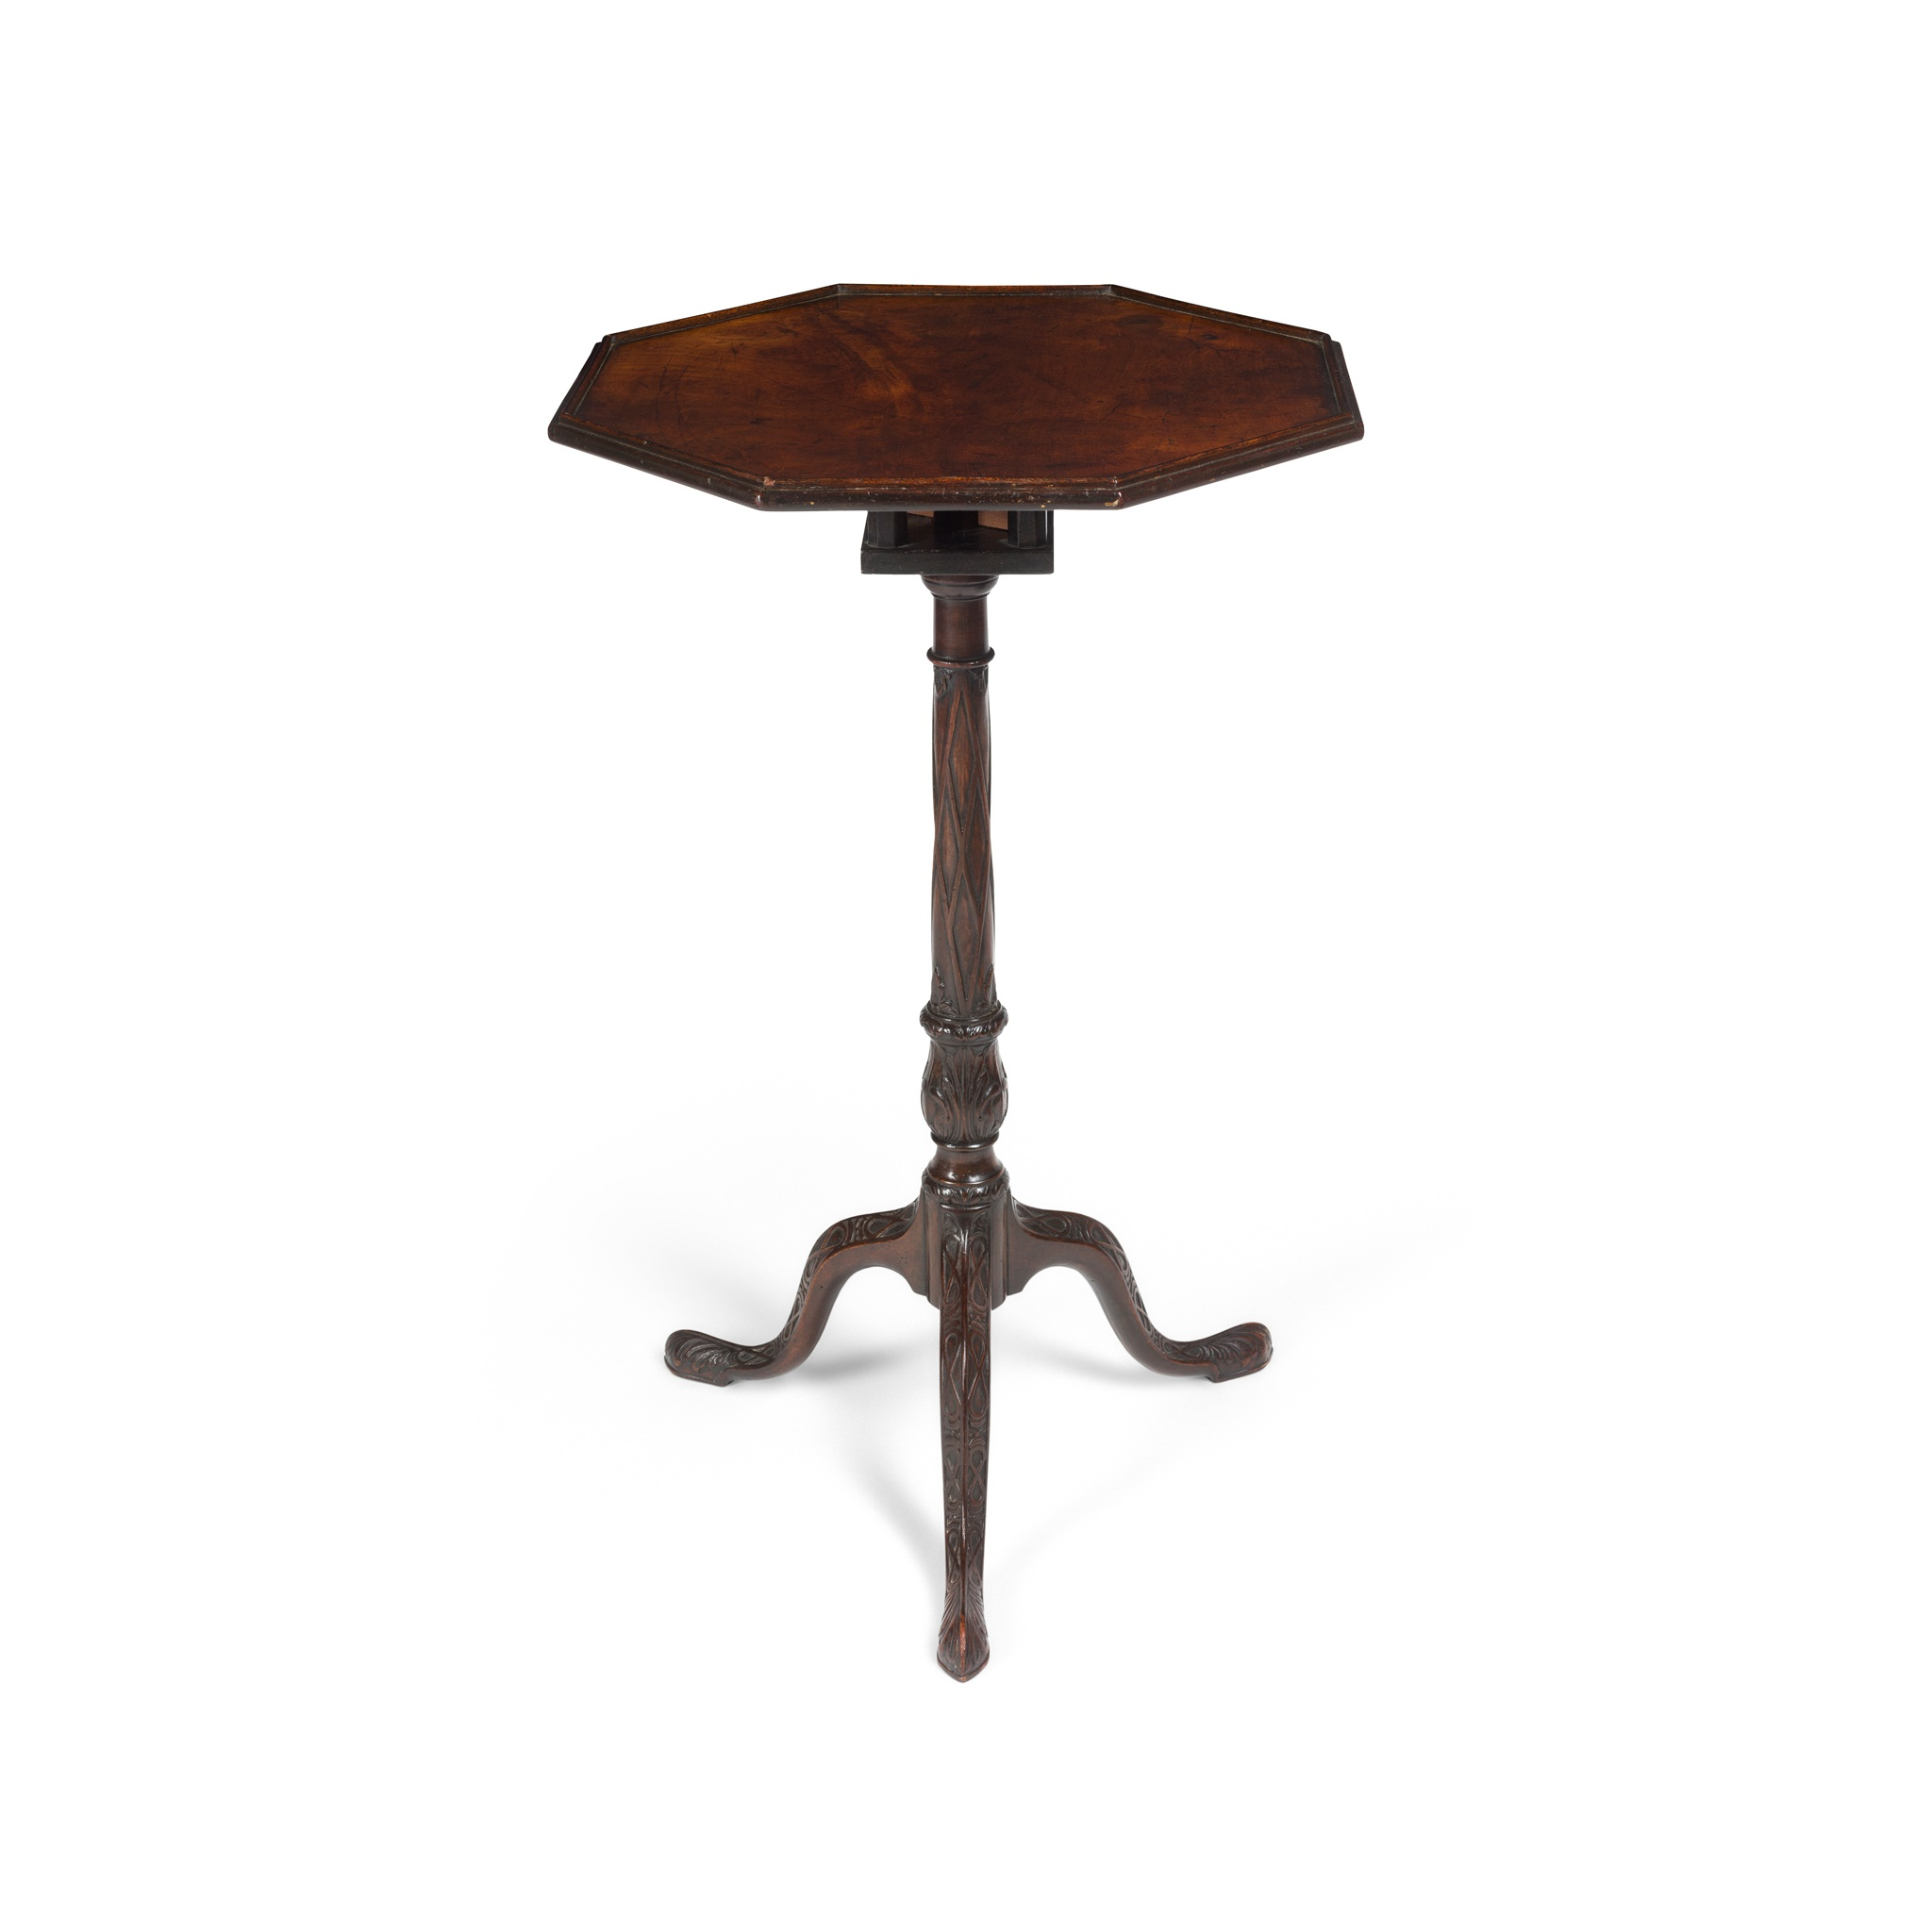 EARLY GEORGE III MAHOGANY OCTAGONAL BIRDCAGE TRIPOD TABLE 18TH CENTURY - Image 2 of 2